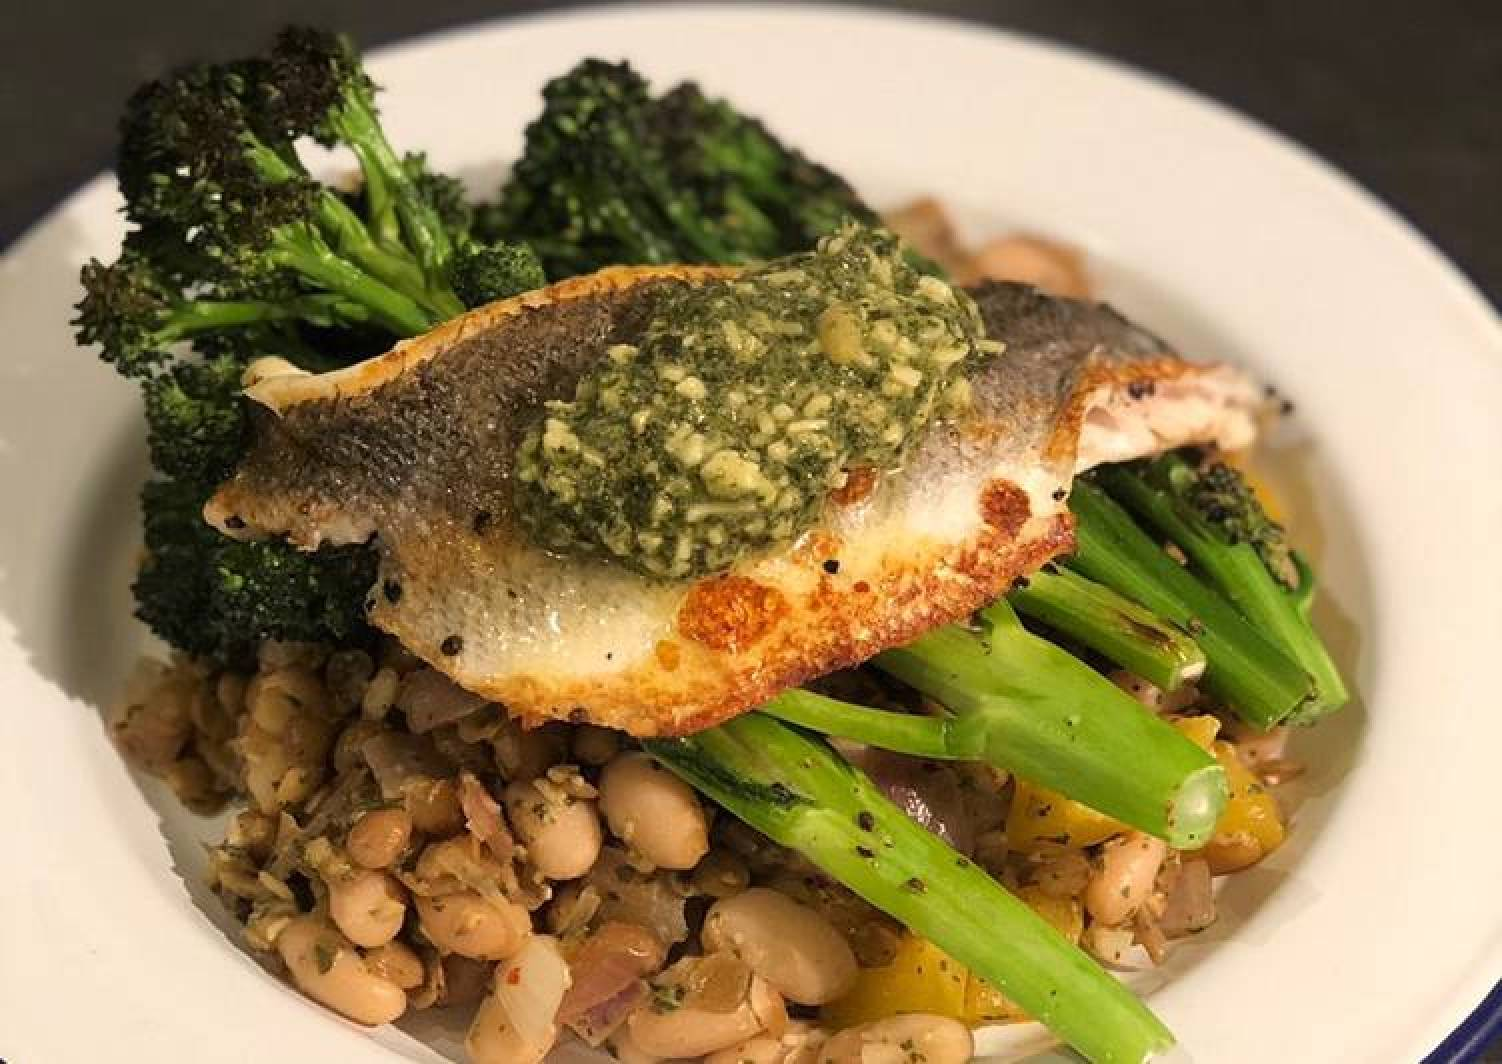 Pesto seabass with cannellini beans and purple sprouting broccoli